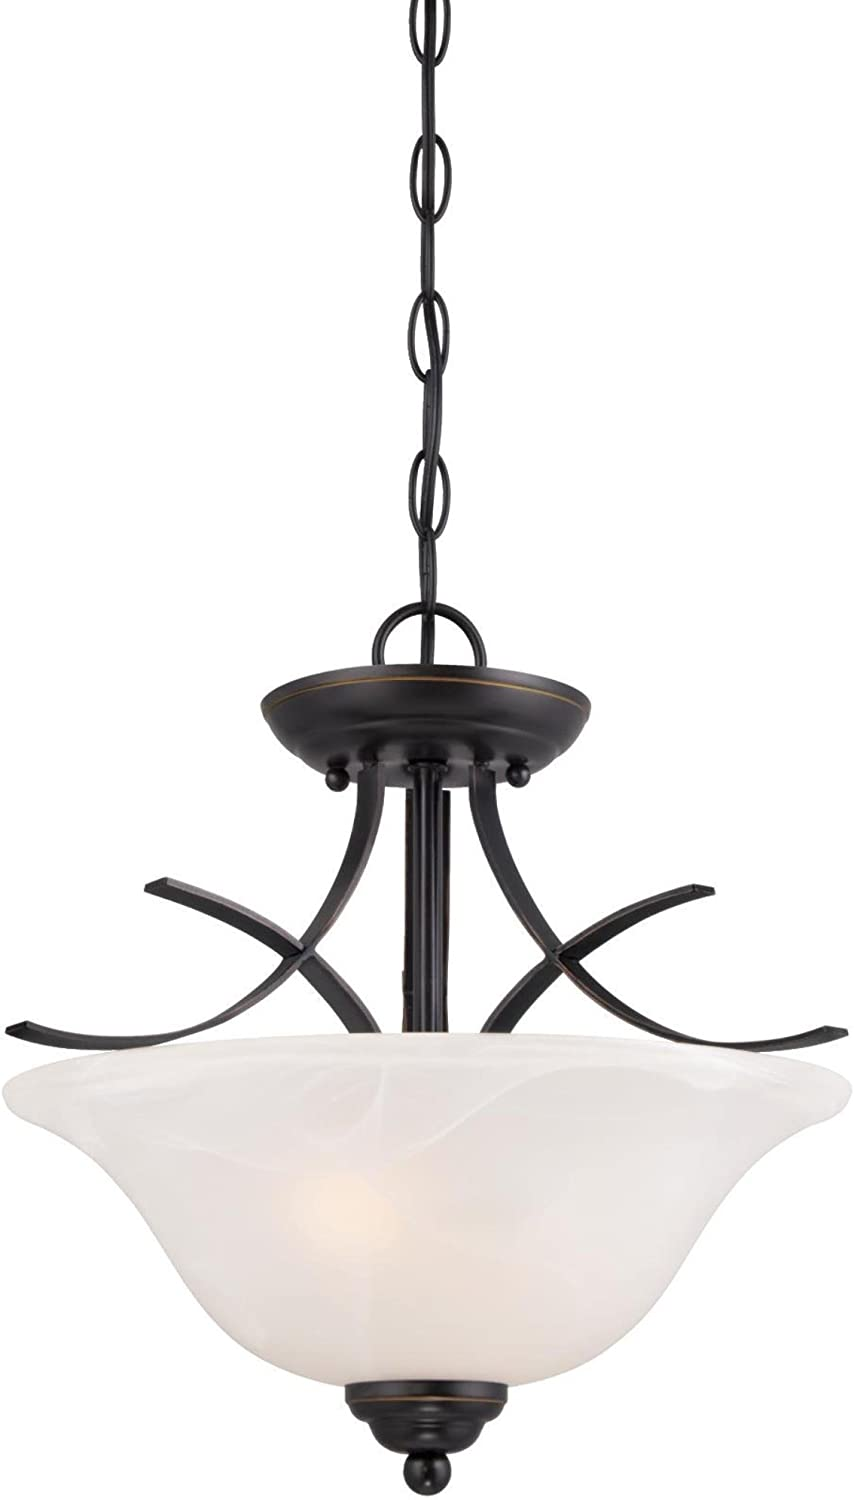 Westinghouse Lighting 6340300 Pacific Falls Two-Light Indoor Convertible Pendant Semi-Flush Ceiling Fixture, Amber Bronze Finish with White Alabaster Glass